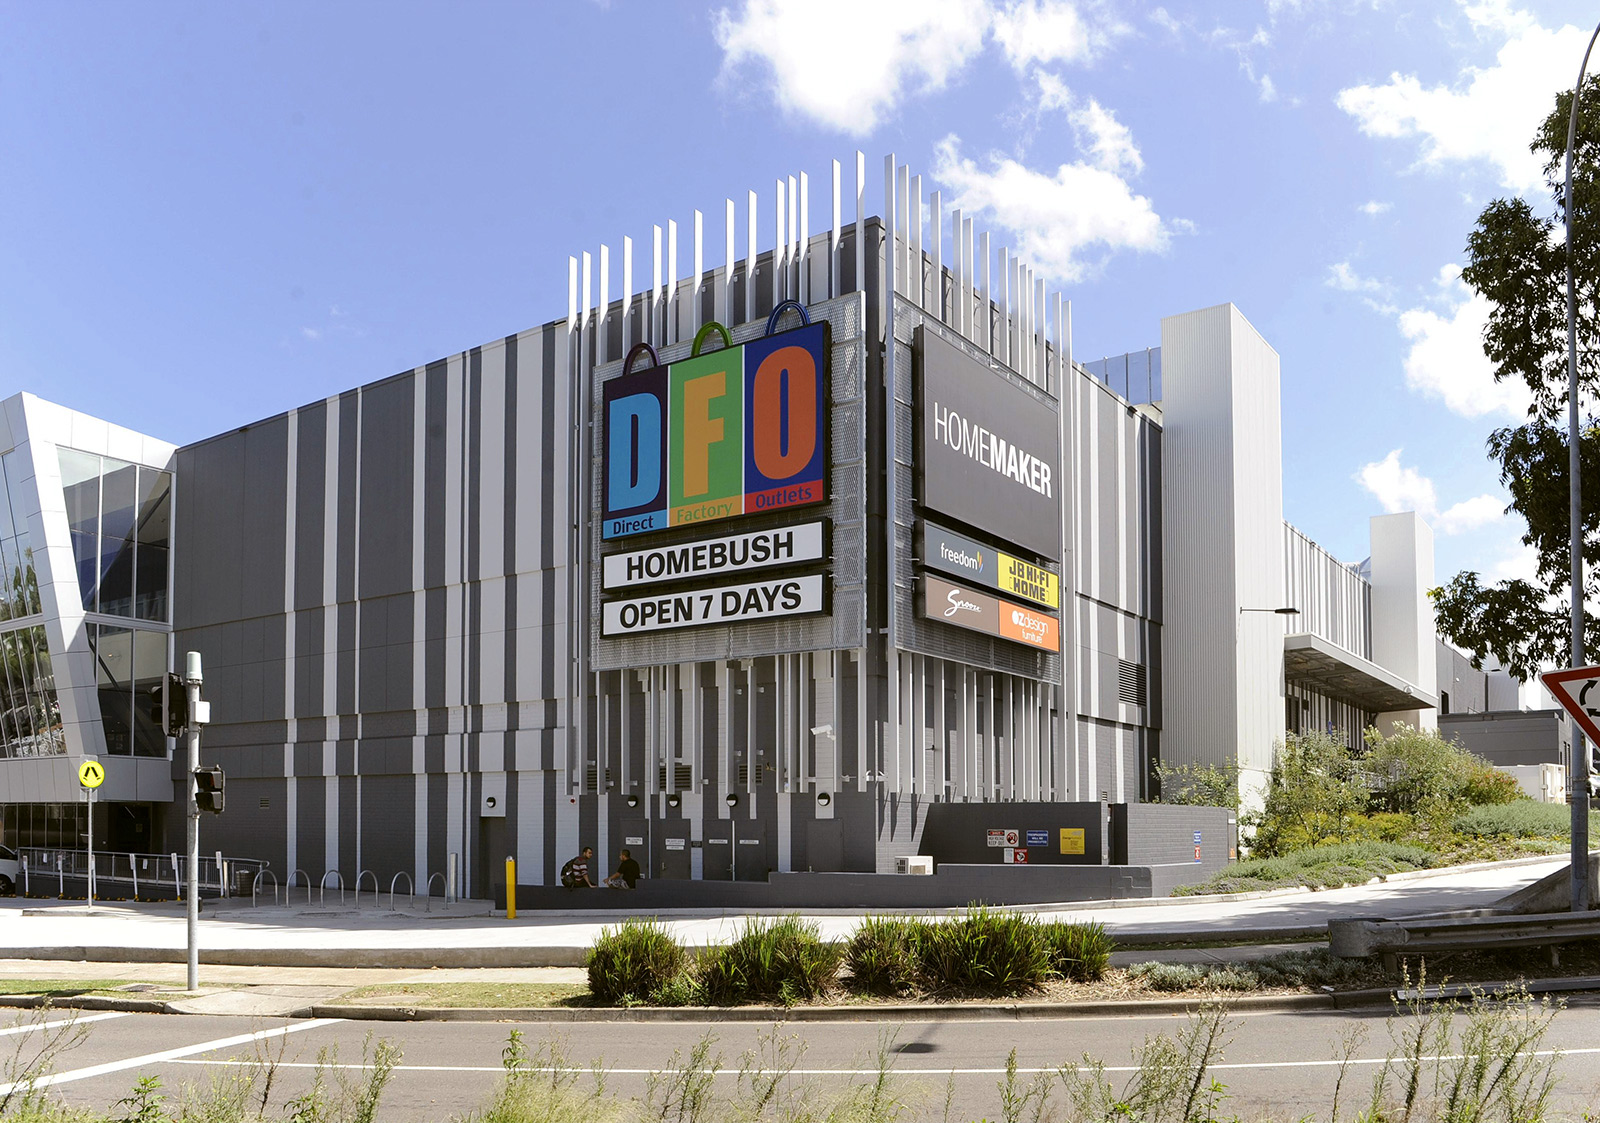 DFO Homebush exterior with old logo